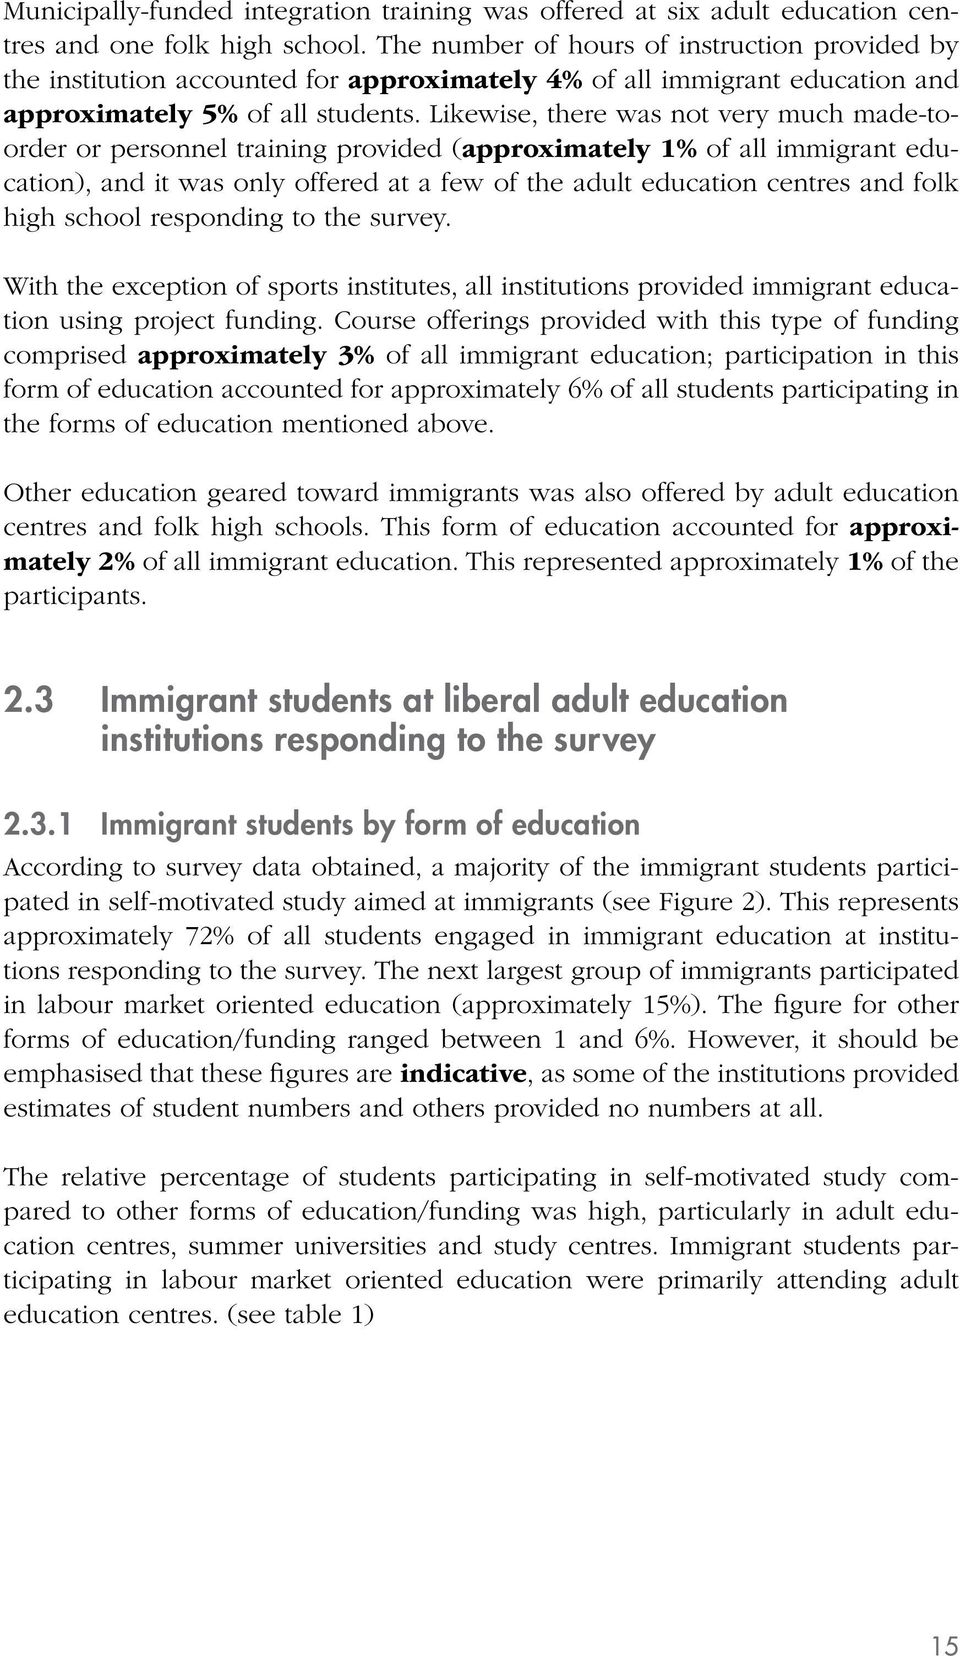 Likewise, there was not very much made-toorder or personnel training provided (approximately 1% of all immigrant education), and it was only offered at a few of the adult education centres and folk